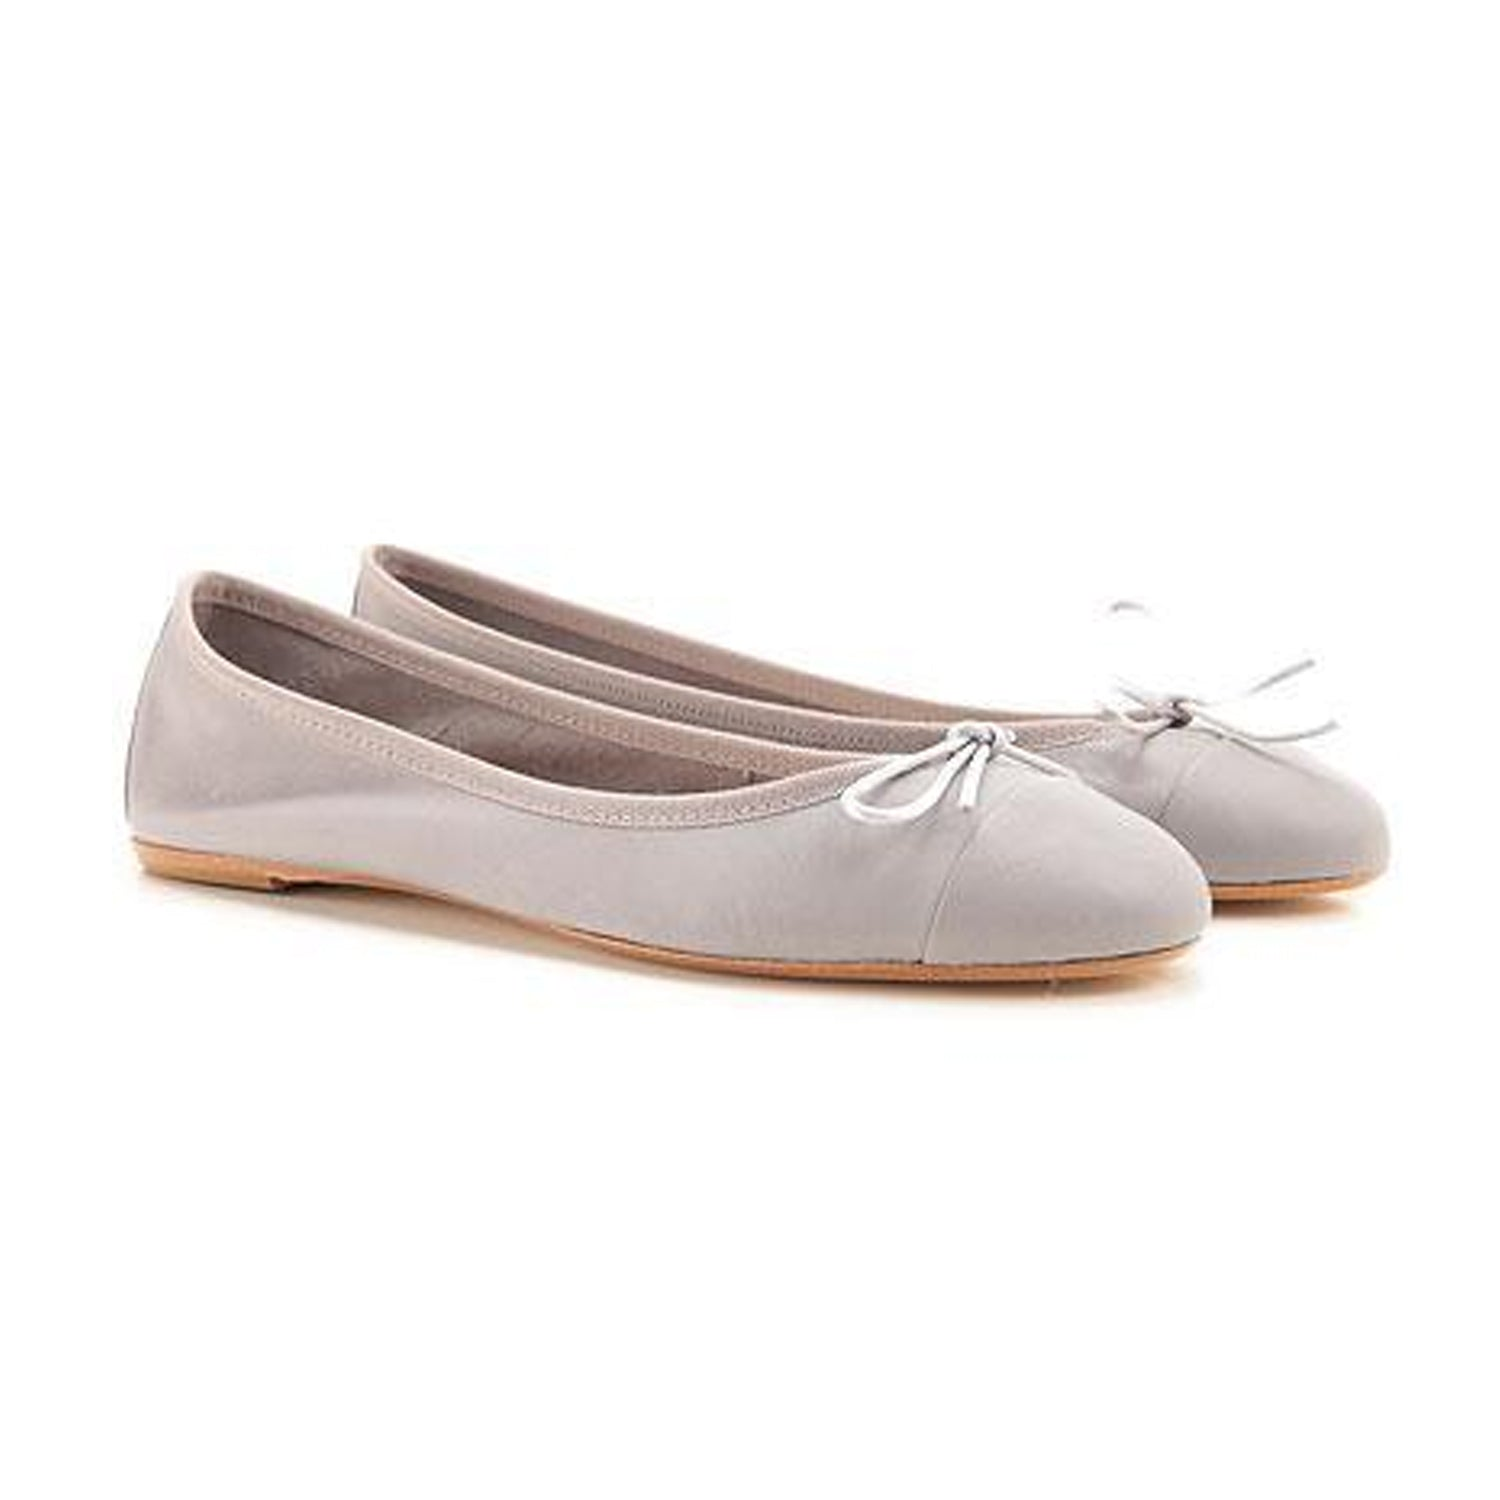 Anna Baiguera Annechic Ballerina Flat   Muse Boutique Outlet